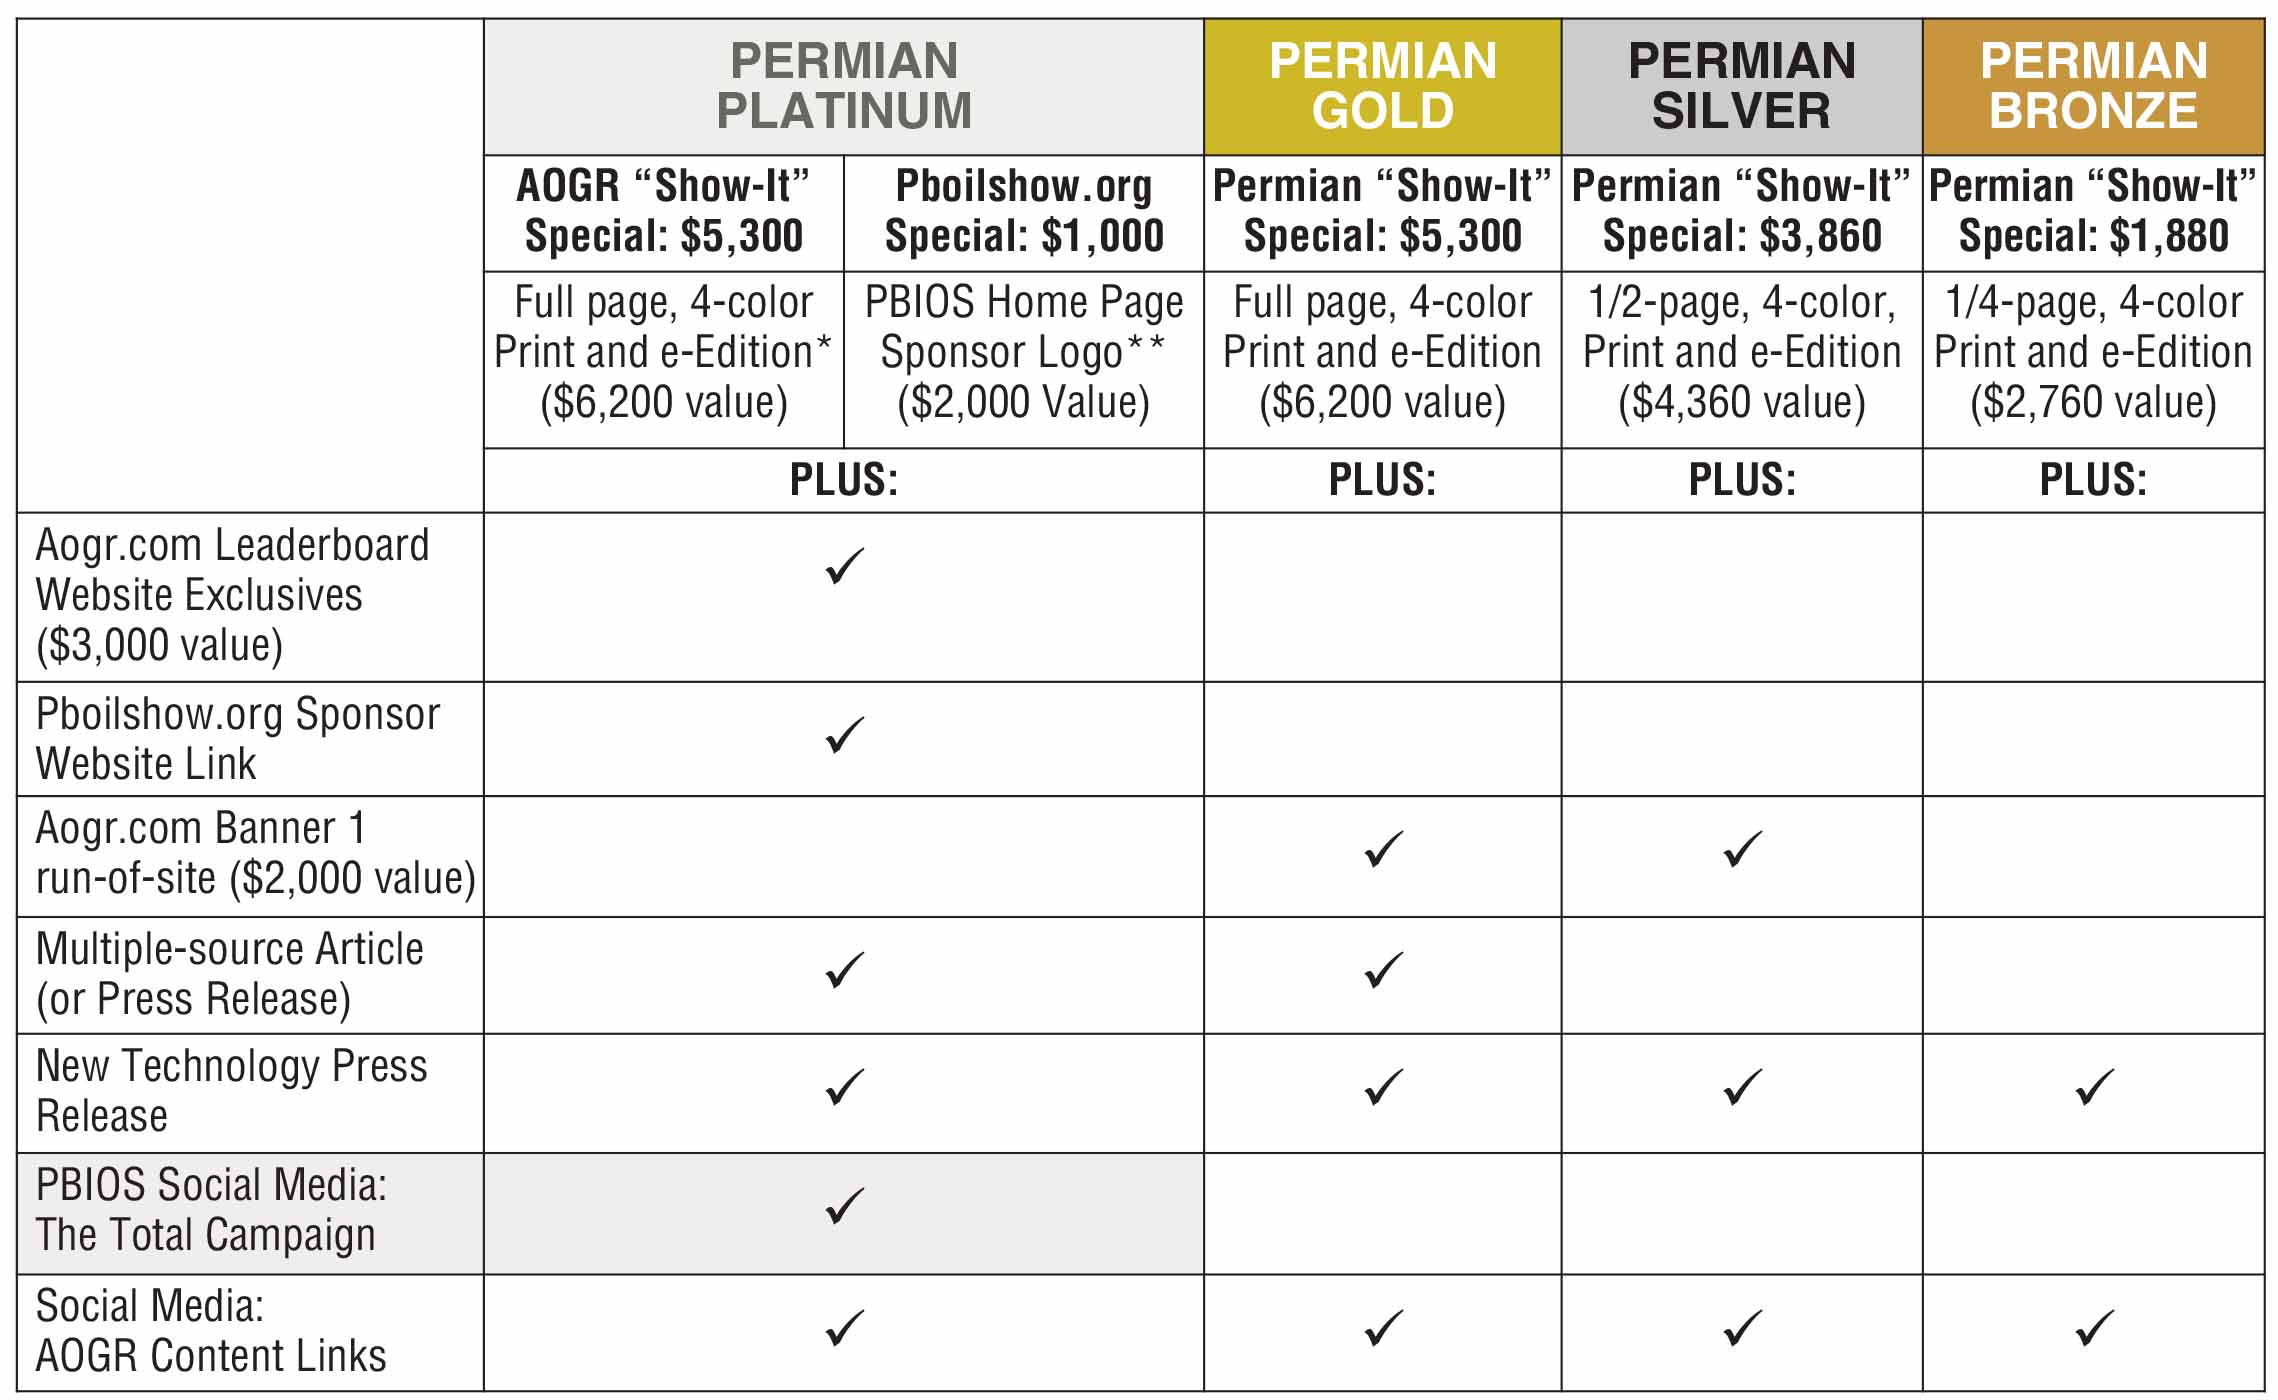 Table of Permian Platinum, Gold, Silver, Bronze package options. Call 1-800-847-8301 for mroe information.